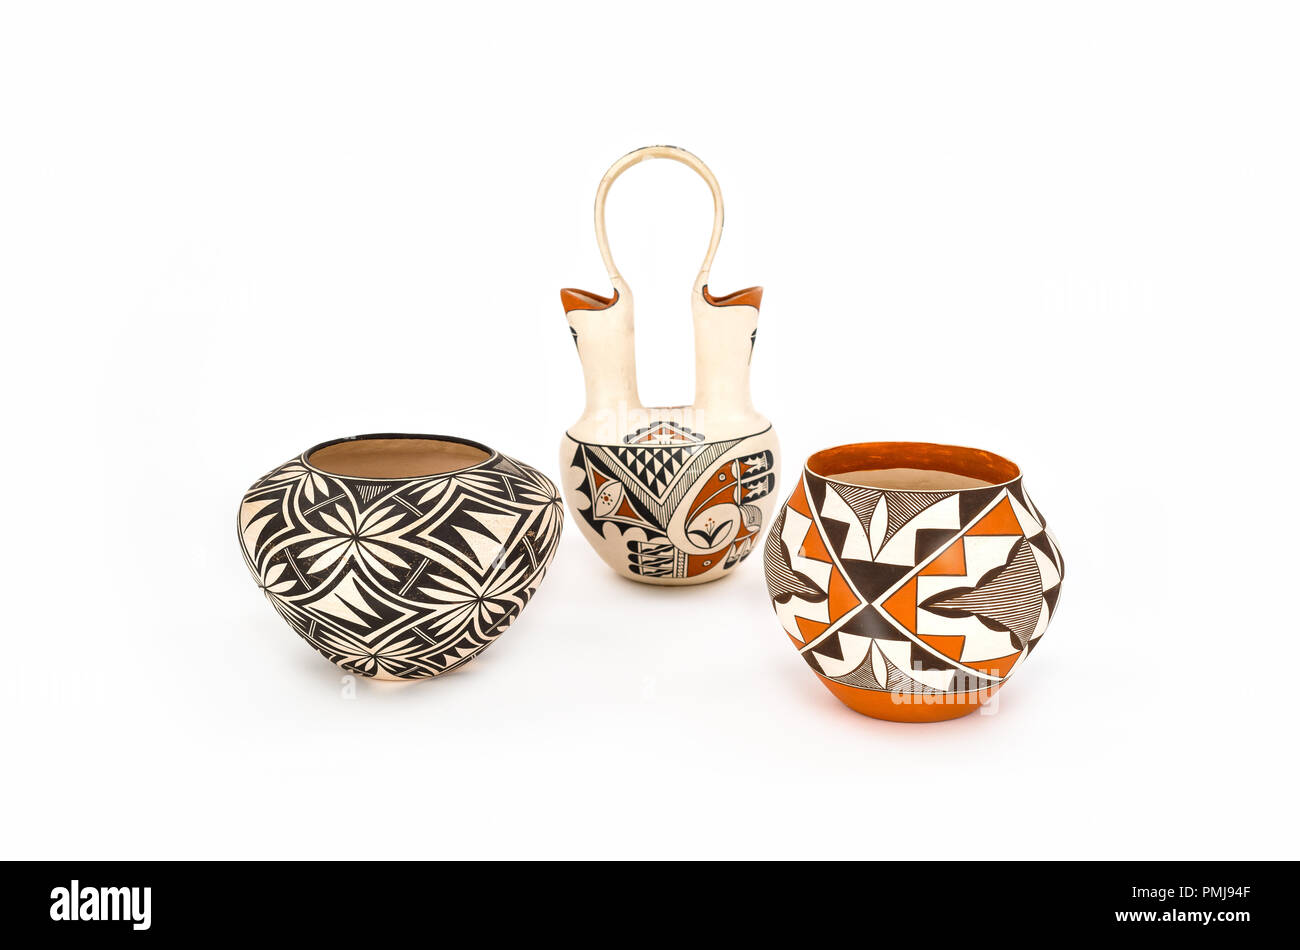 Three pieces of authentic Native American Pottery with a white background. Bright colors and intricate patterns. - Stock Image